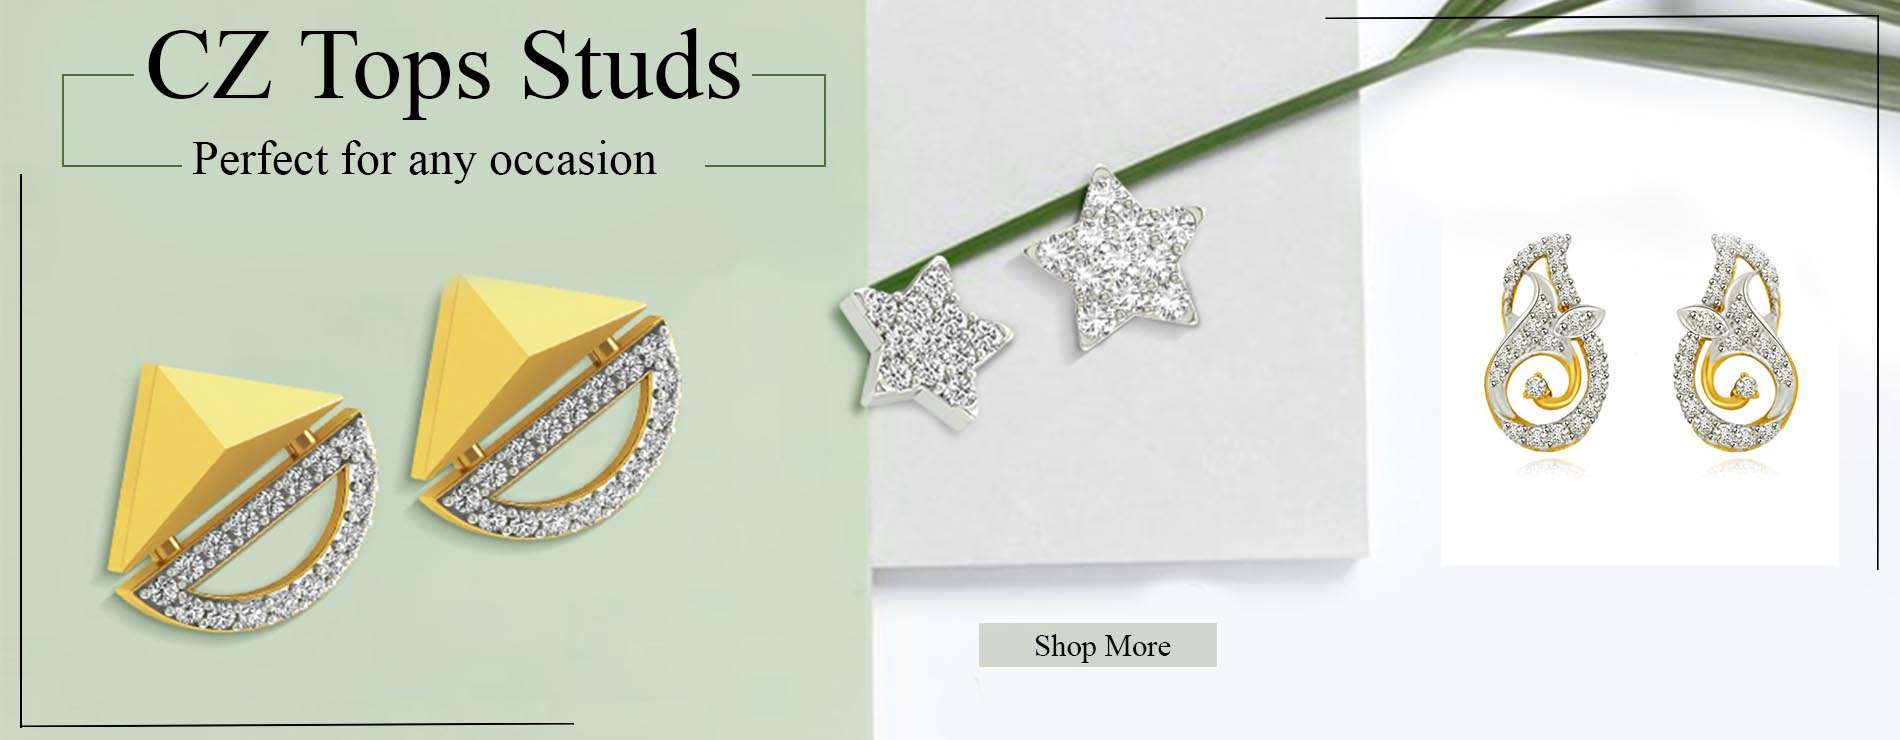 Our creations of the Fine Fashion Jewellery that are Popular Across Europe.